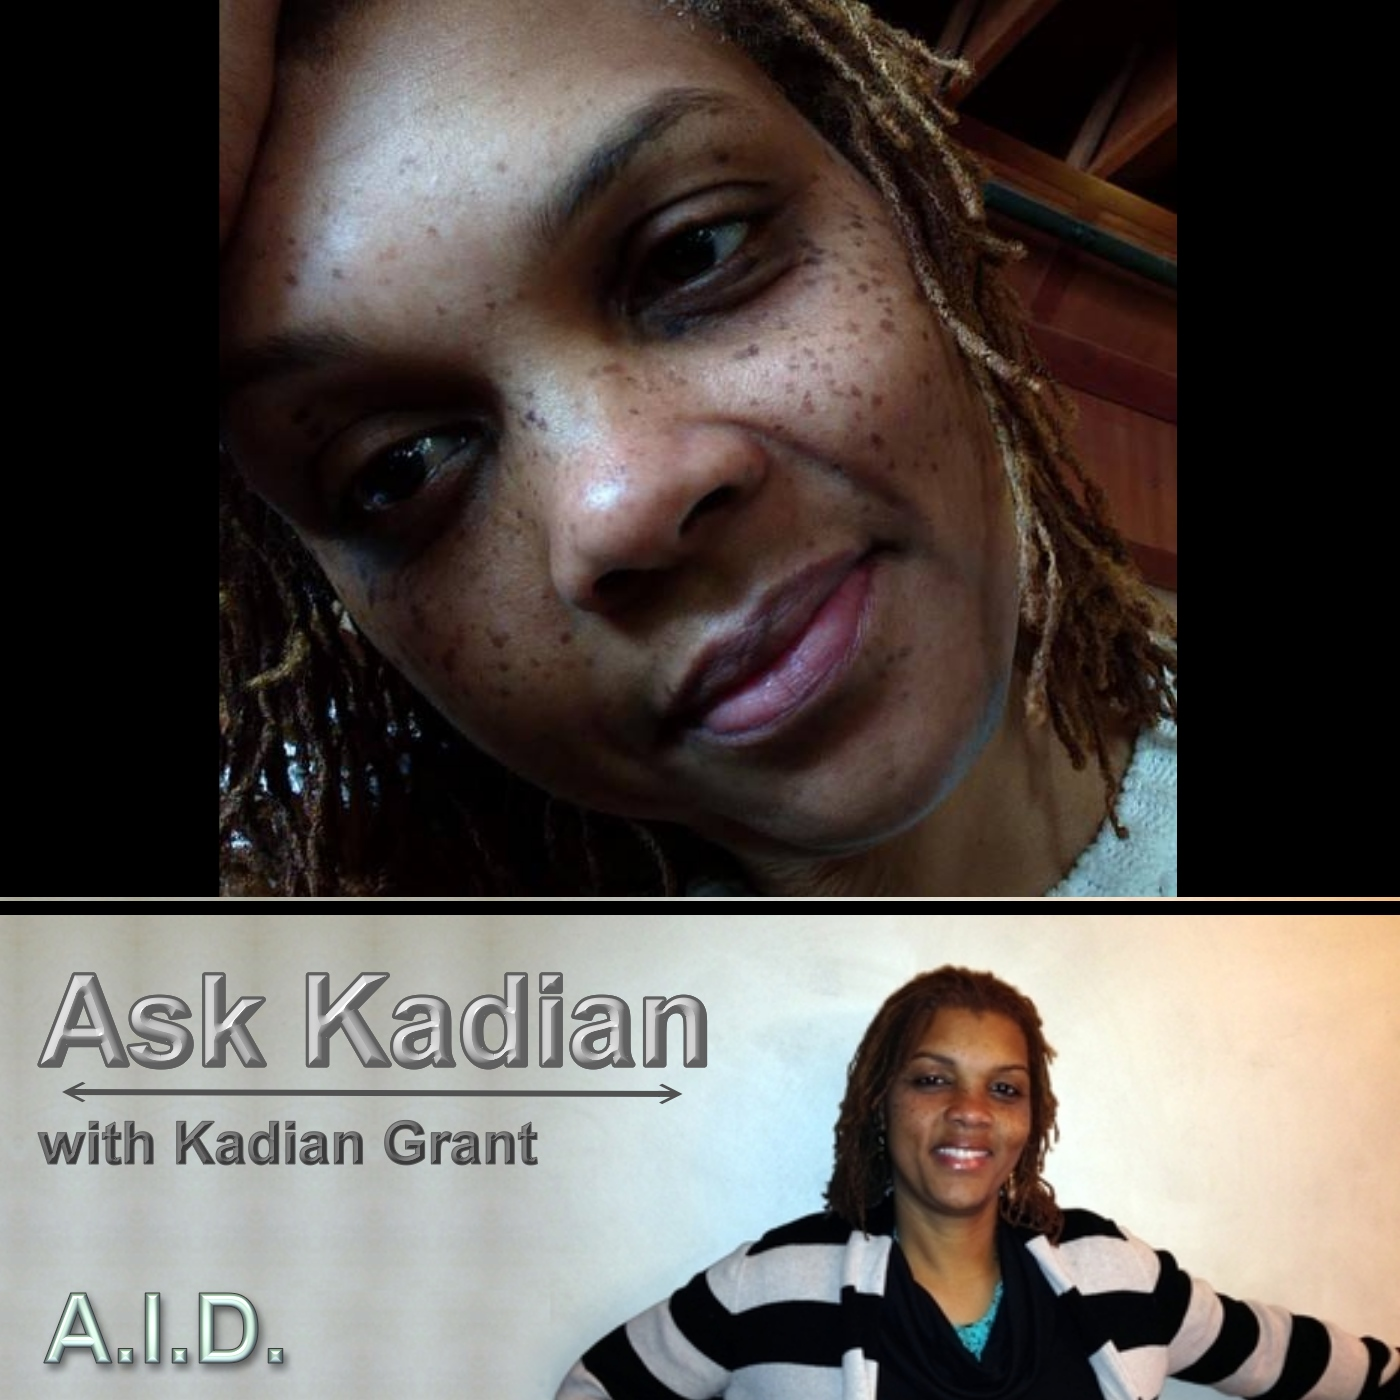 Ask Kadian with Kadian Grant